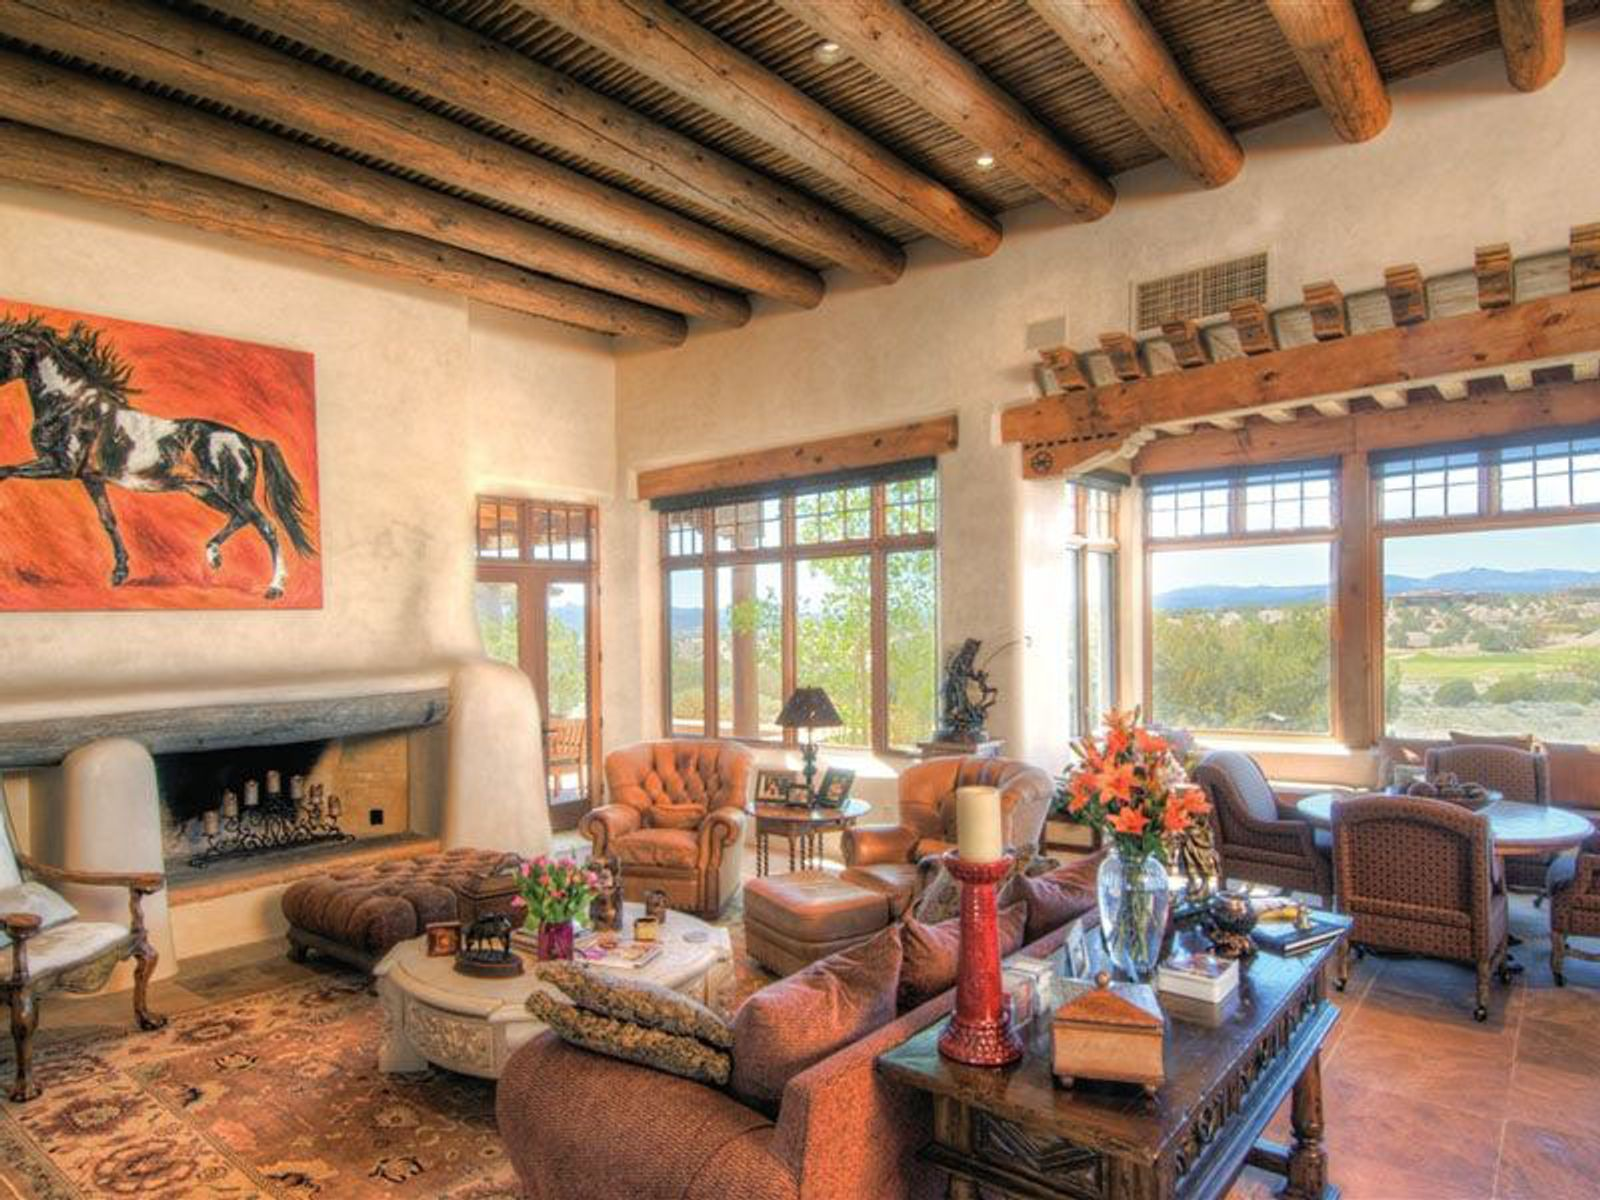 54 Grey Wolf , Santa Fe NM Single Family Home - Santa Fe Real Estate